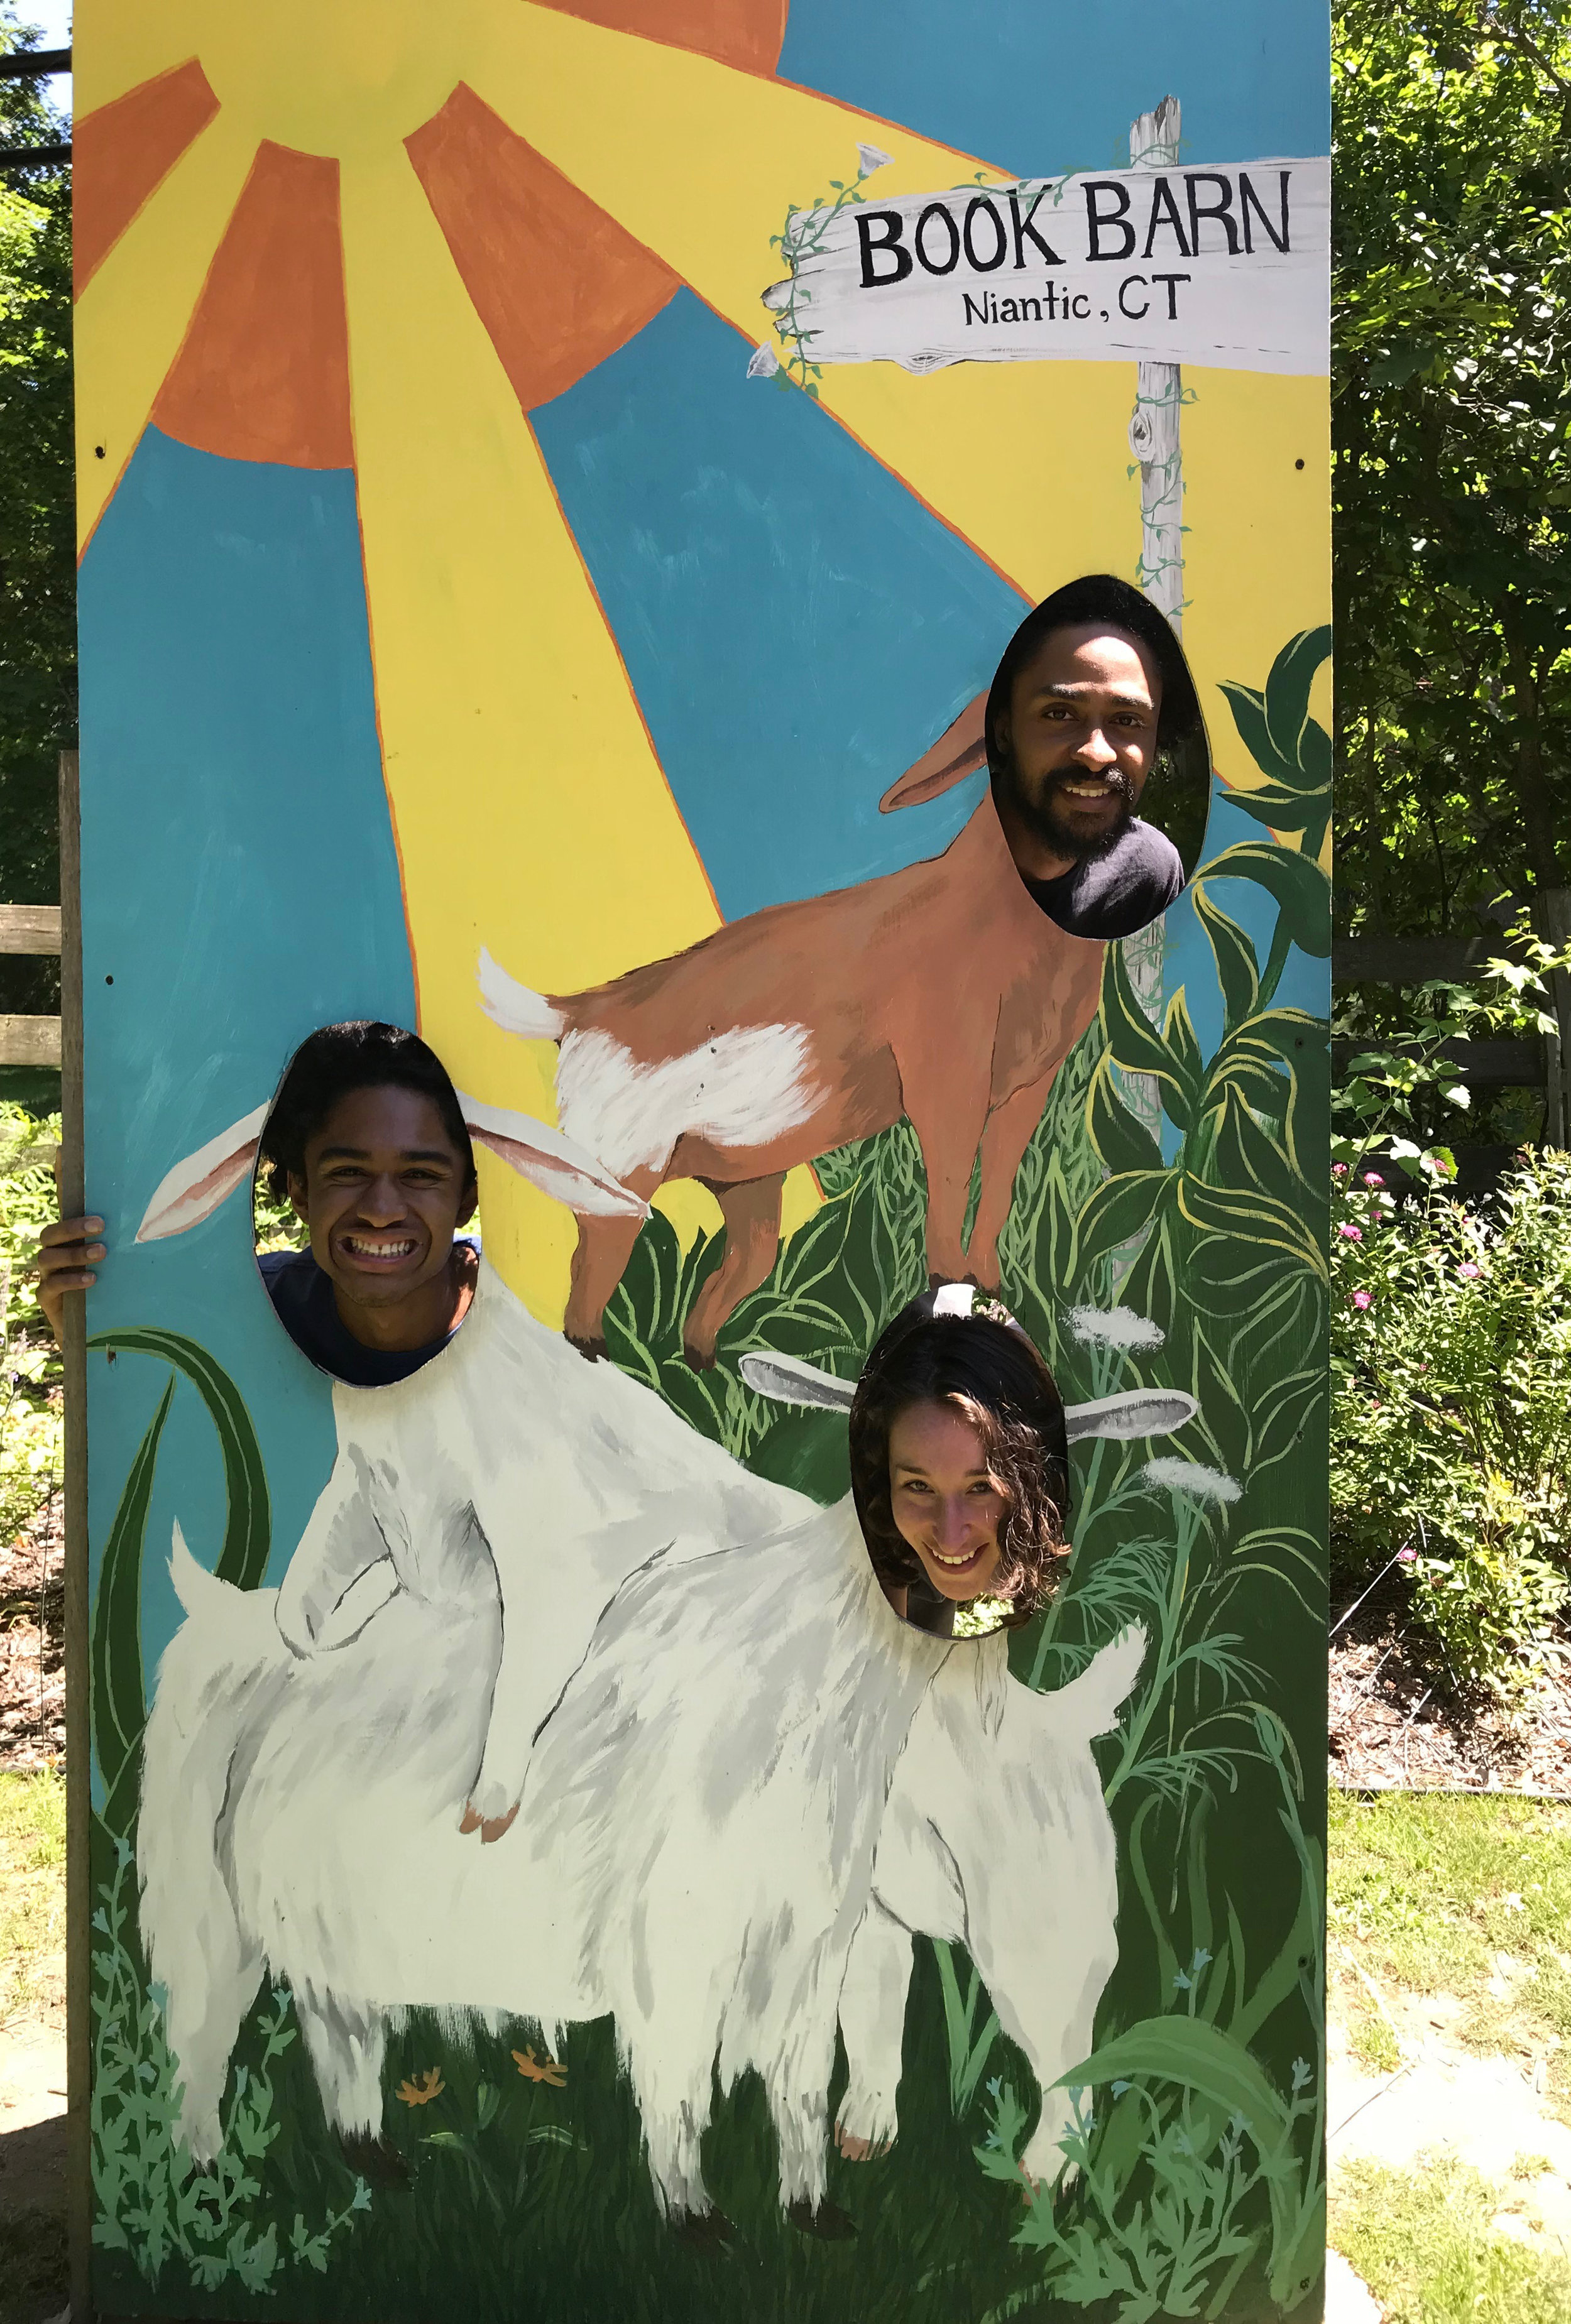 One of the many hand painted elements around the grounds, this fun photo-op celebrates the actual goats that call The Book Barn home.